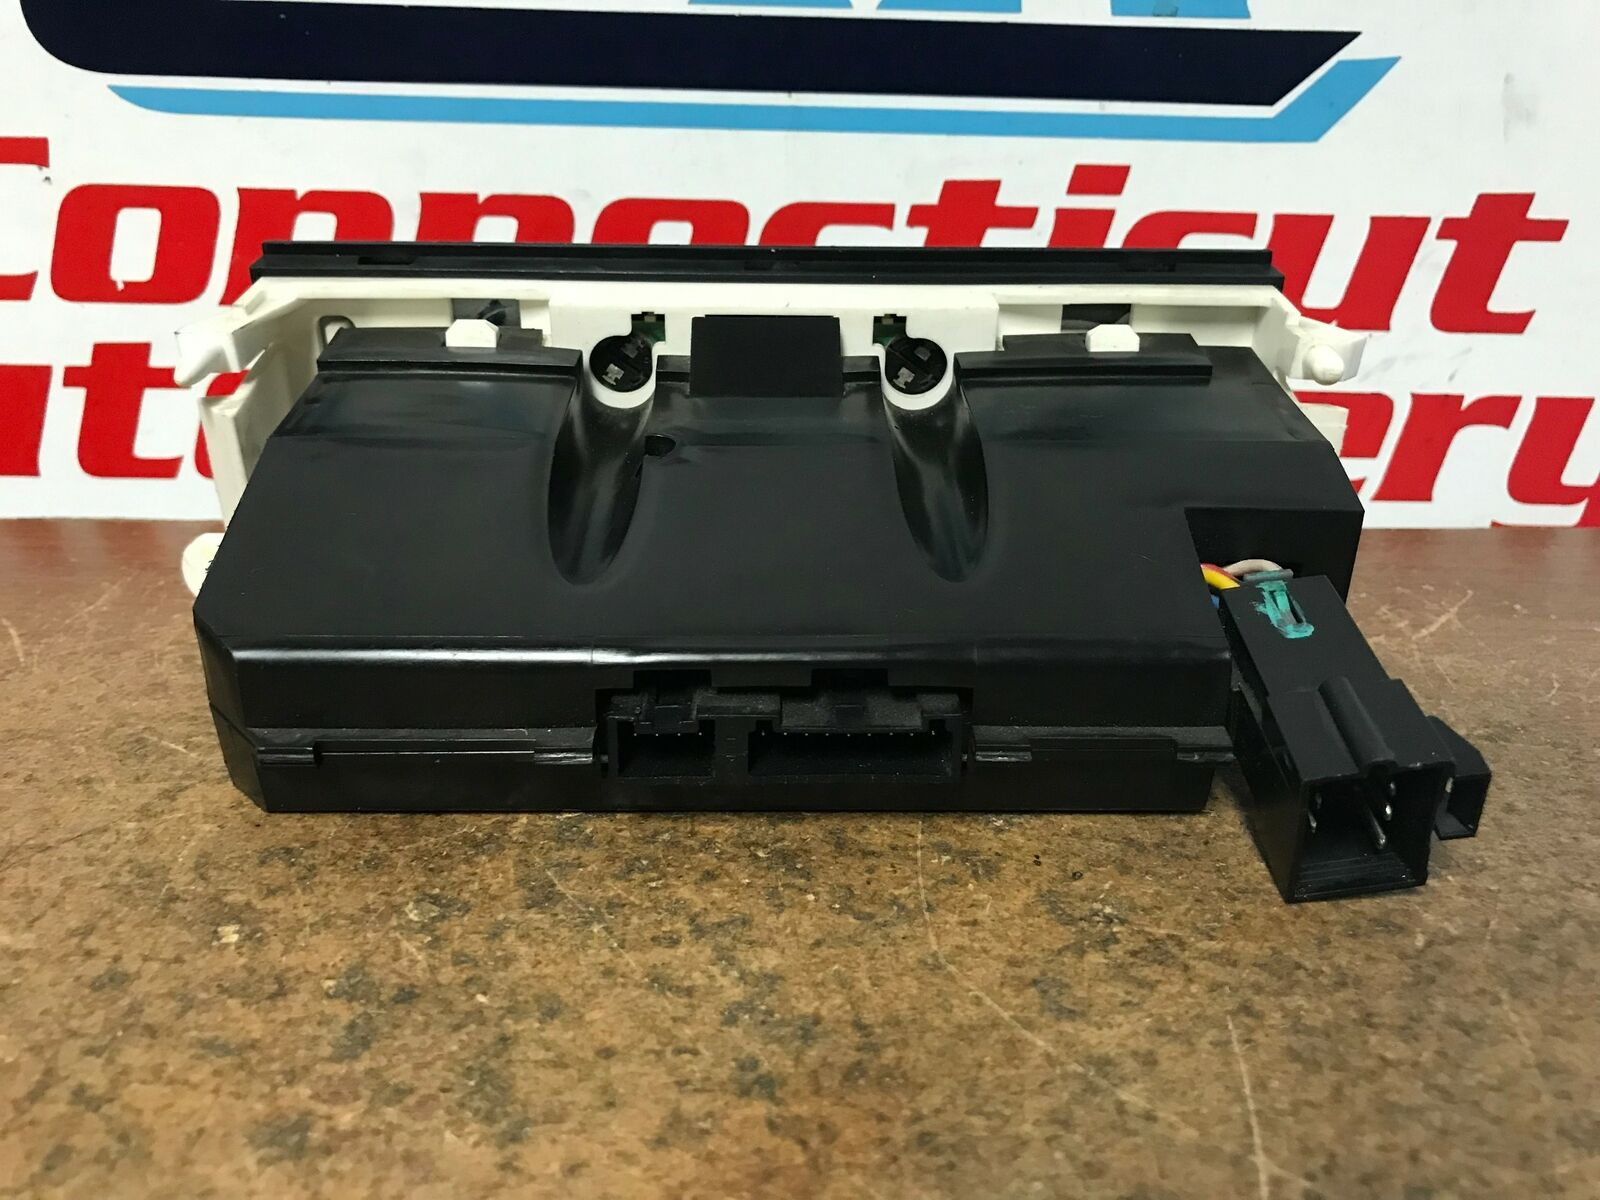 Used 1964 Oldsmobile Cutlass A/C & Heater Controls for Sale